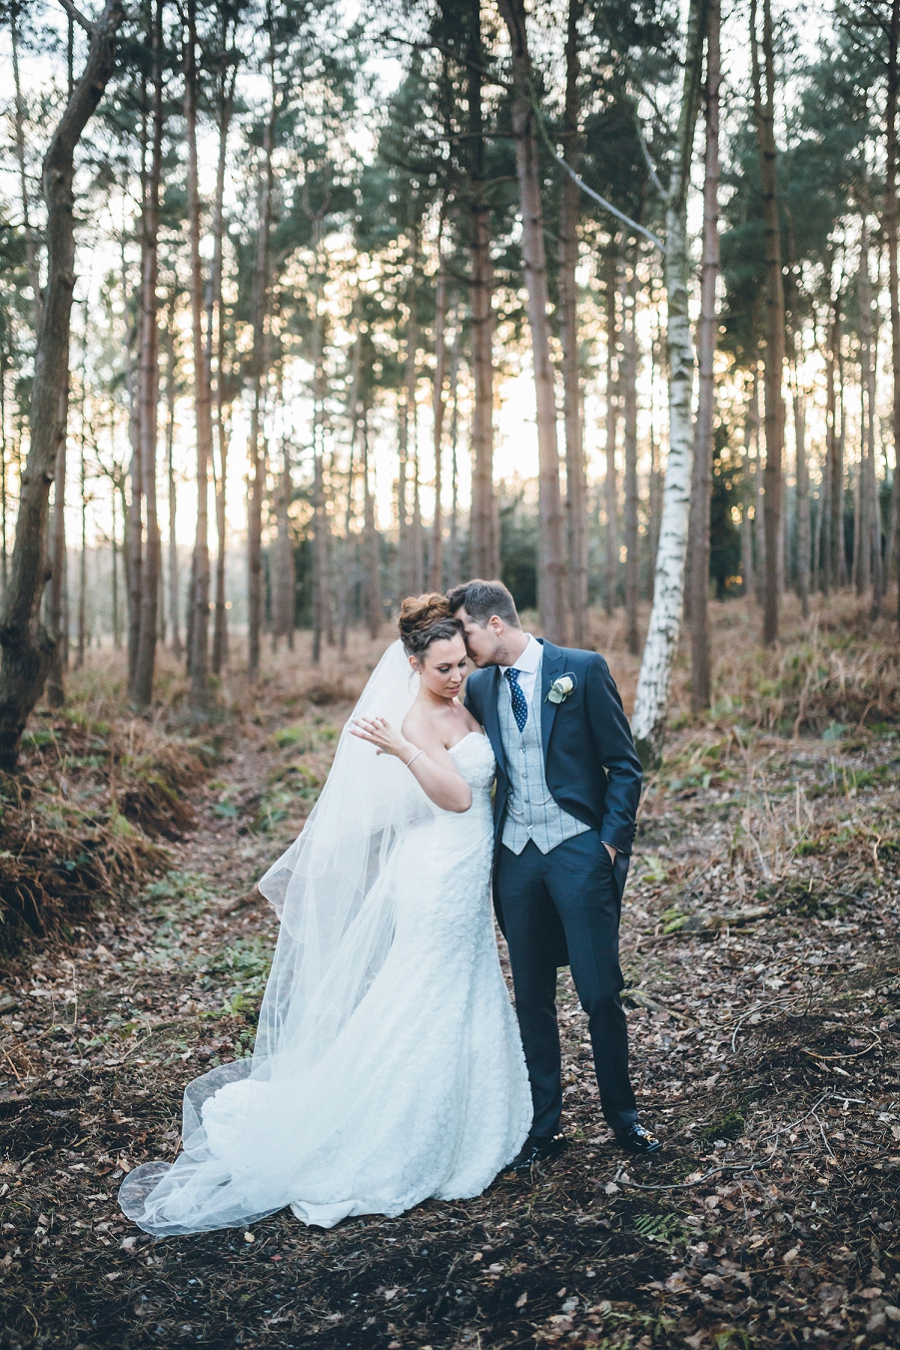 Sarah Janes Photography, Wedding photographer Chester, London, Sheffield, Wirral, Wrexham, Liverpool, Natural wedding photography, Quirky, documentary_0089.jpg